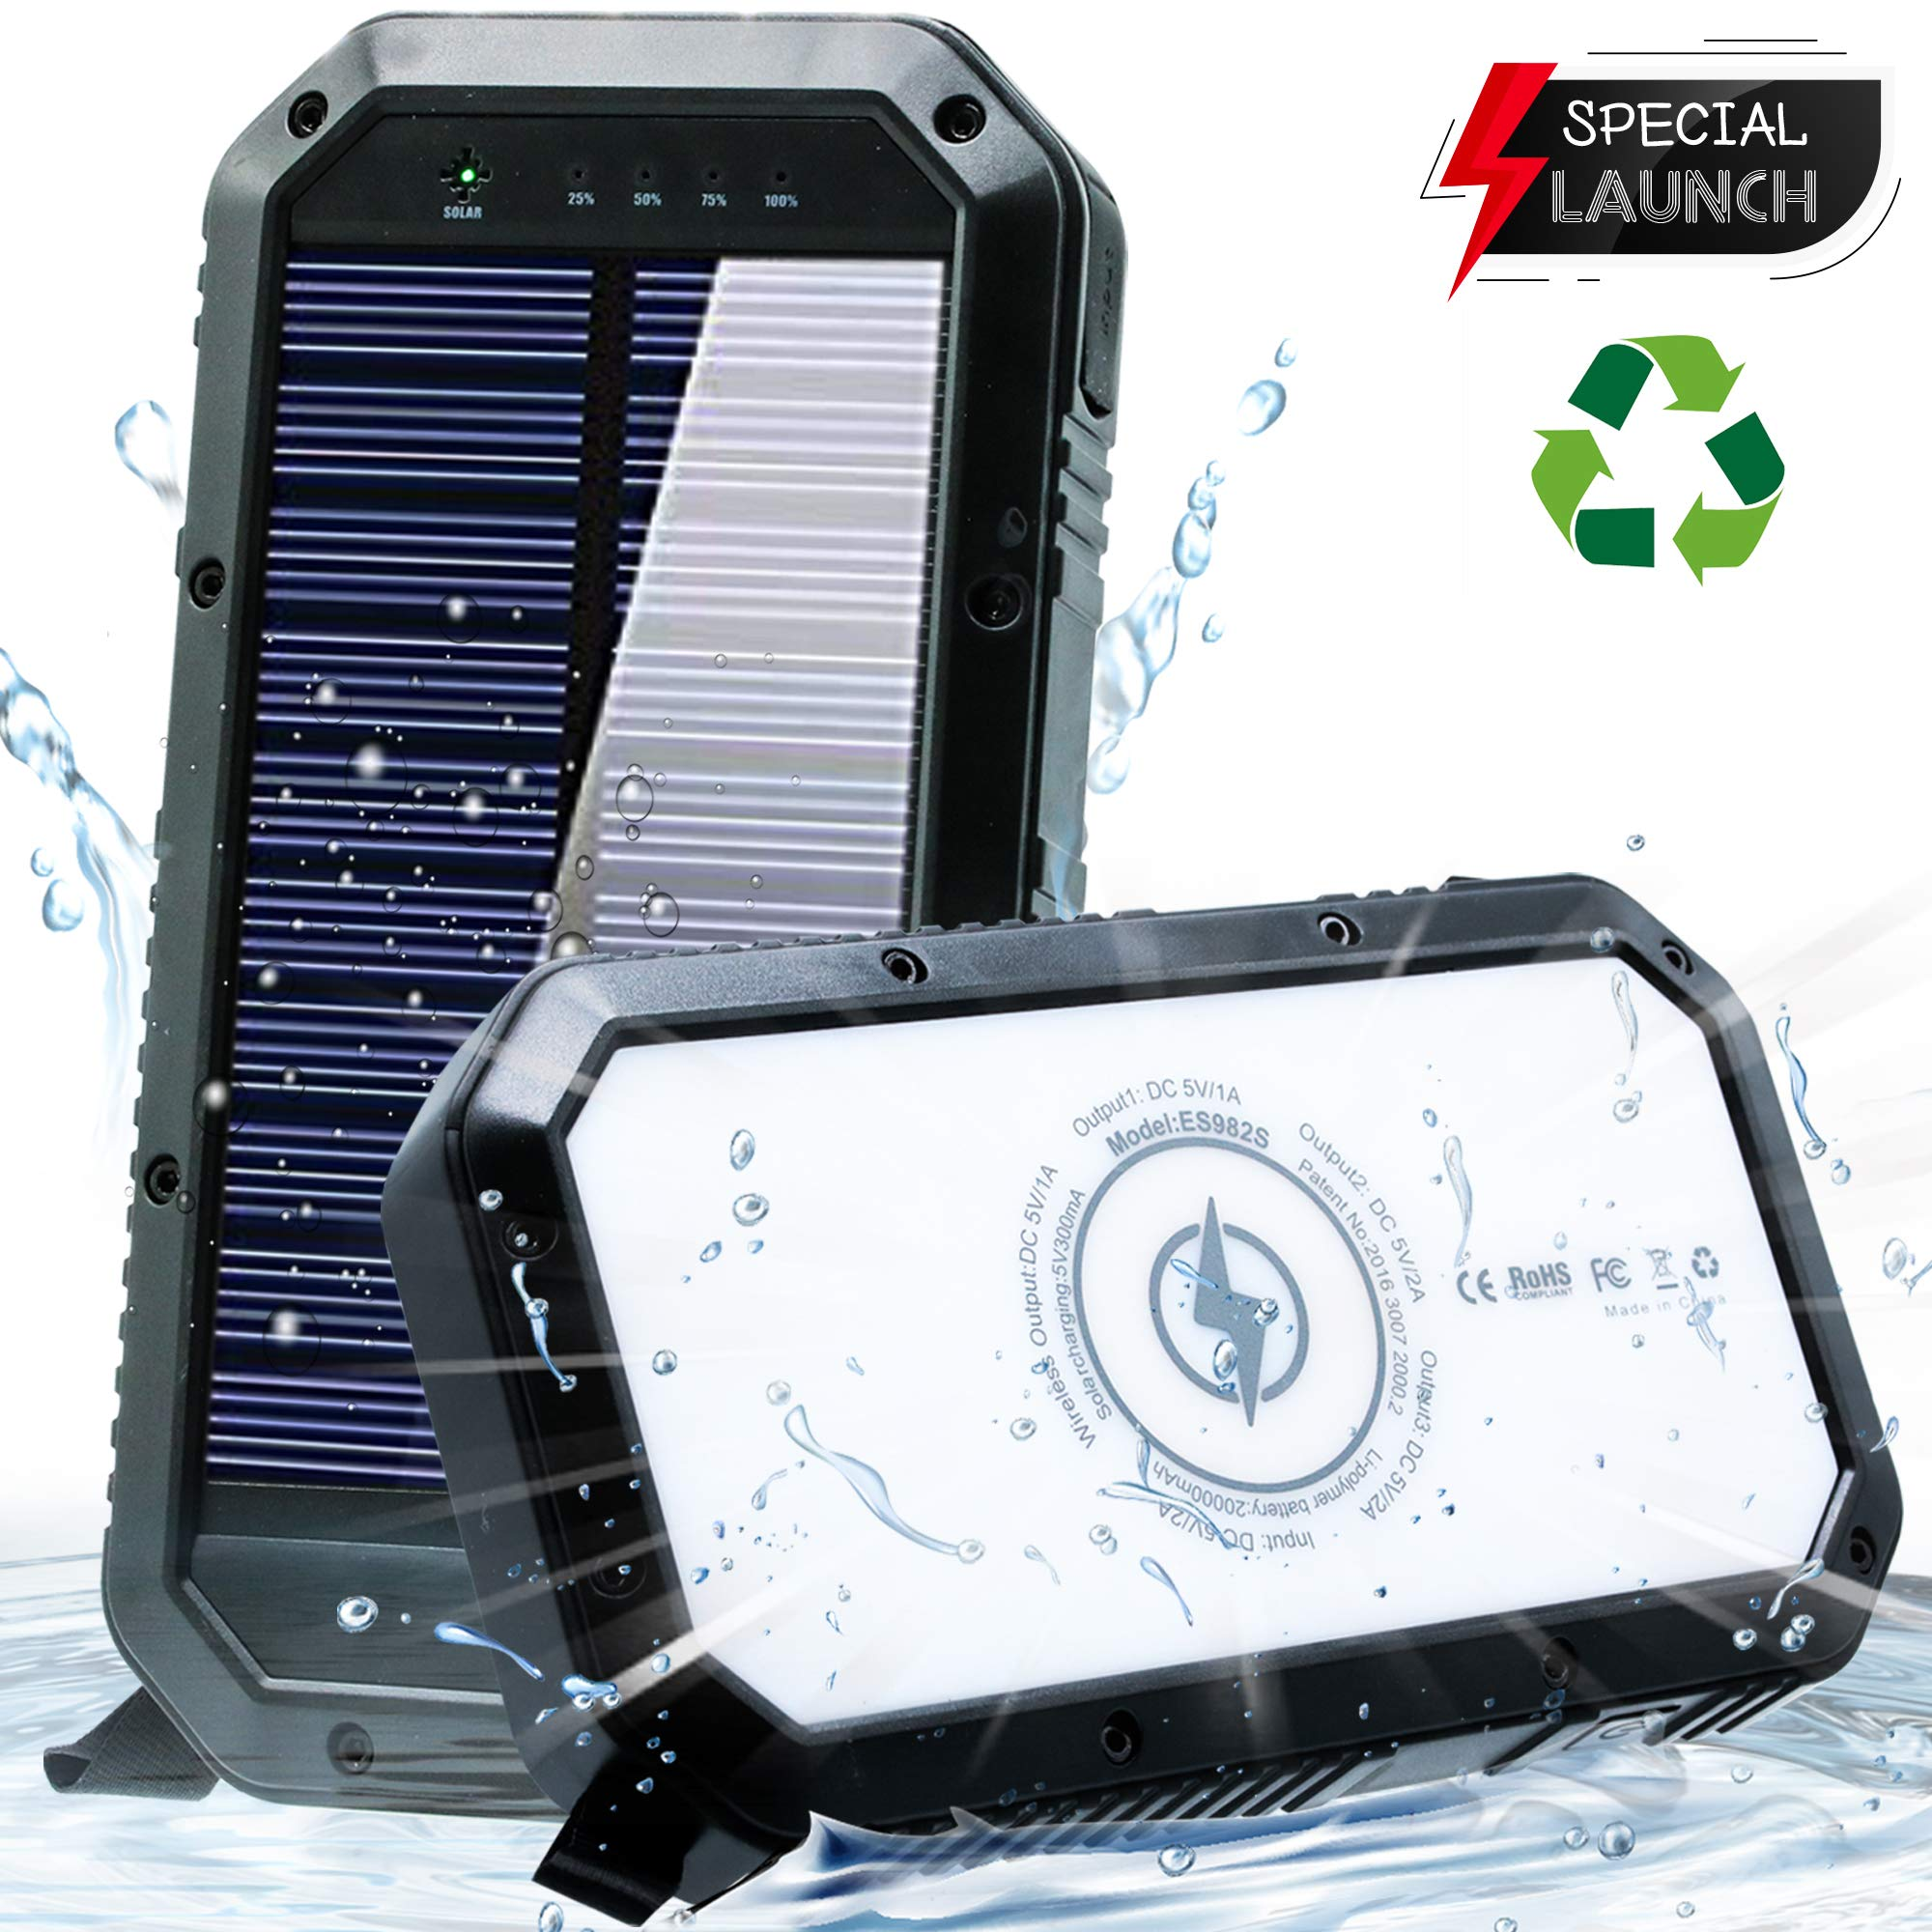 Solar Phone Charger 20000mAh Solar Charger for cell phone - Wireless Solar Power Charger Solar Powered Phone Chargers iphone 6+times - [UPDATED] Portable Power Bank -Plus 36 Led Light Solar Power Bank by Solar Concepts